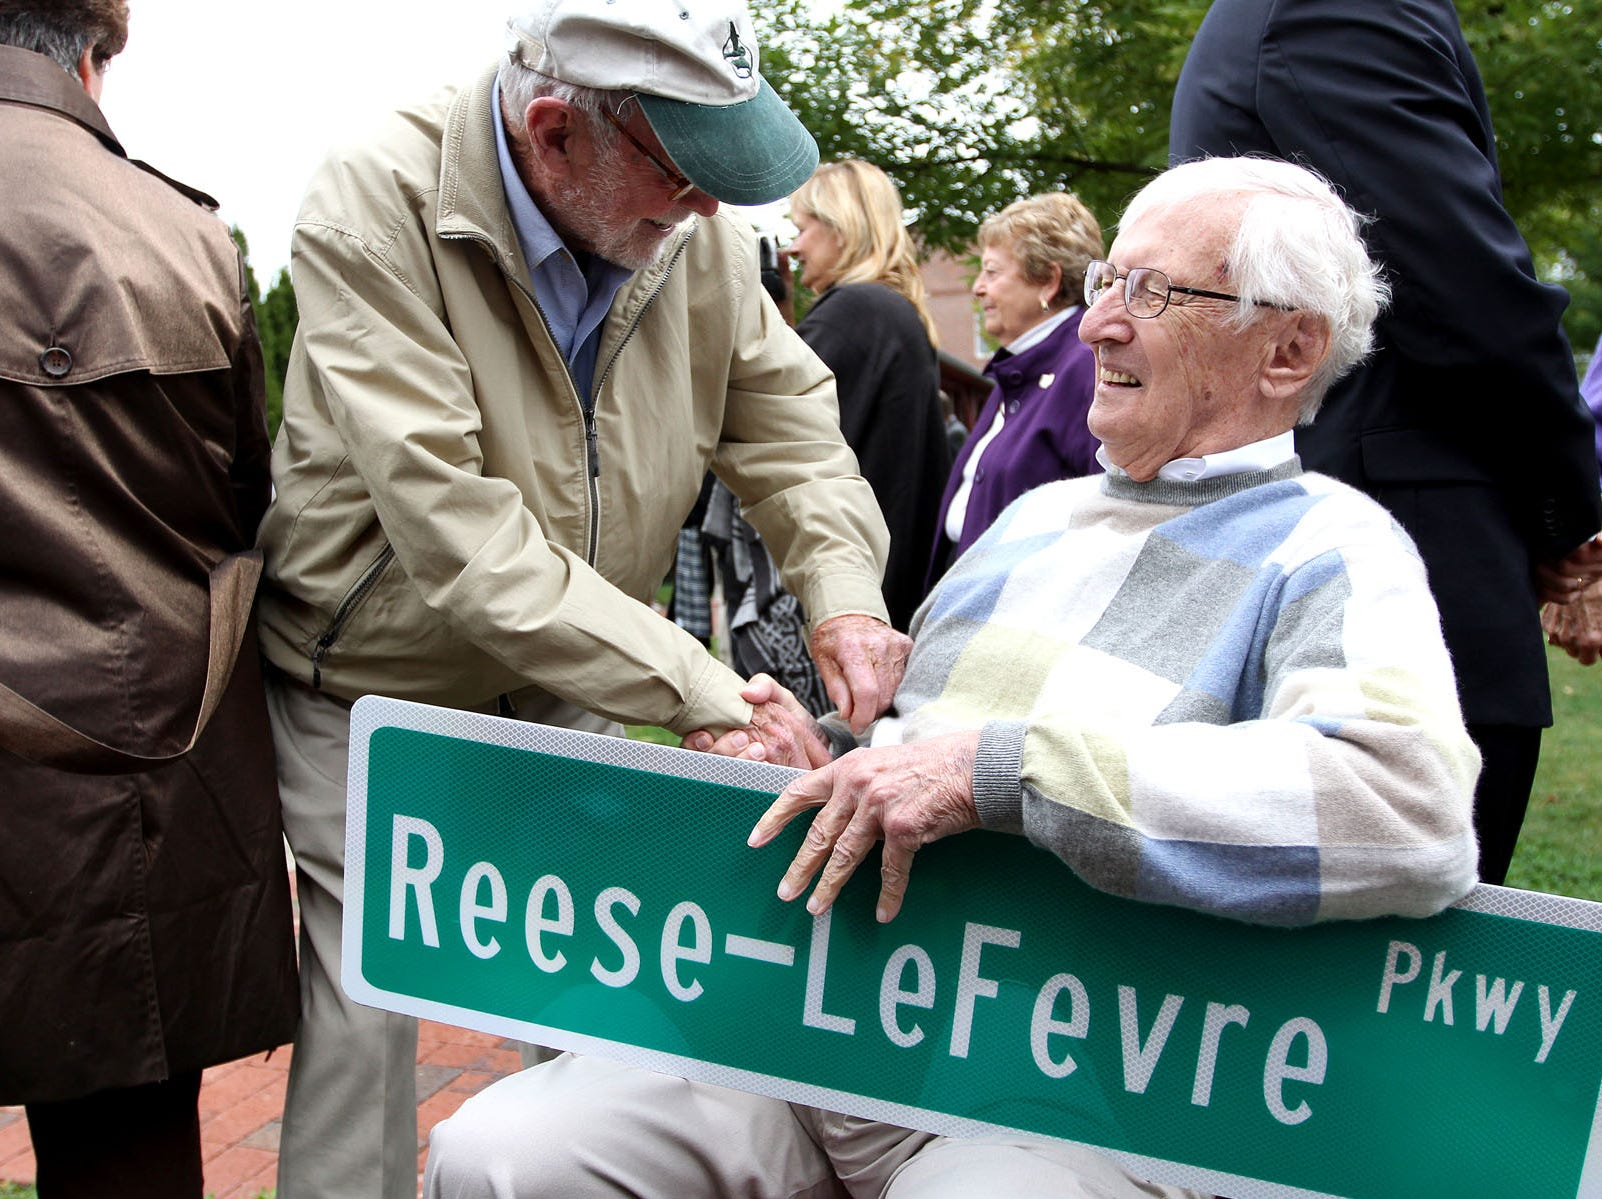 Jack O'Neill, left, comes up to shake the hand of Gib Reese at a dedication of the newly named Reese-LeFevre Parkway, in honor of J. Gilbert Reese and Howard E. LeFevre at The Works in Newark, Ohio on Saturday, Sept. 24, 2011. Zach Gray/The Advocate